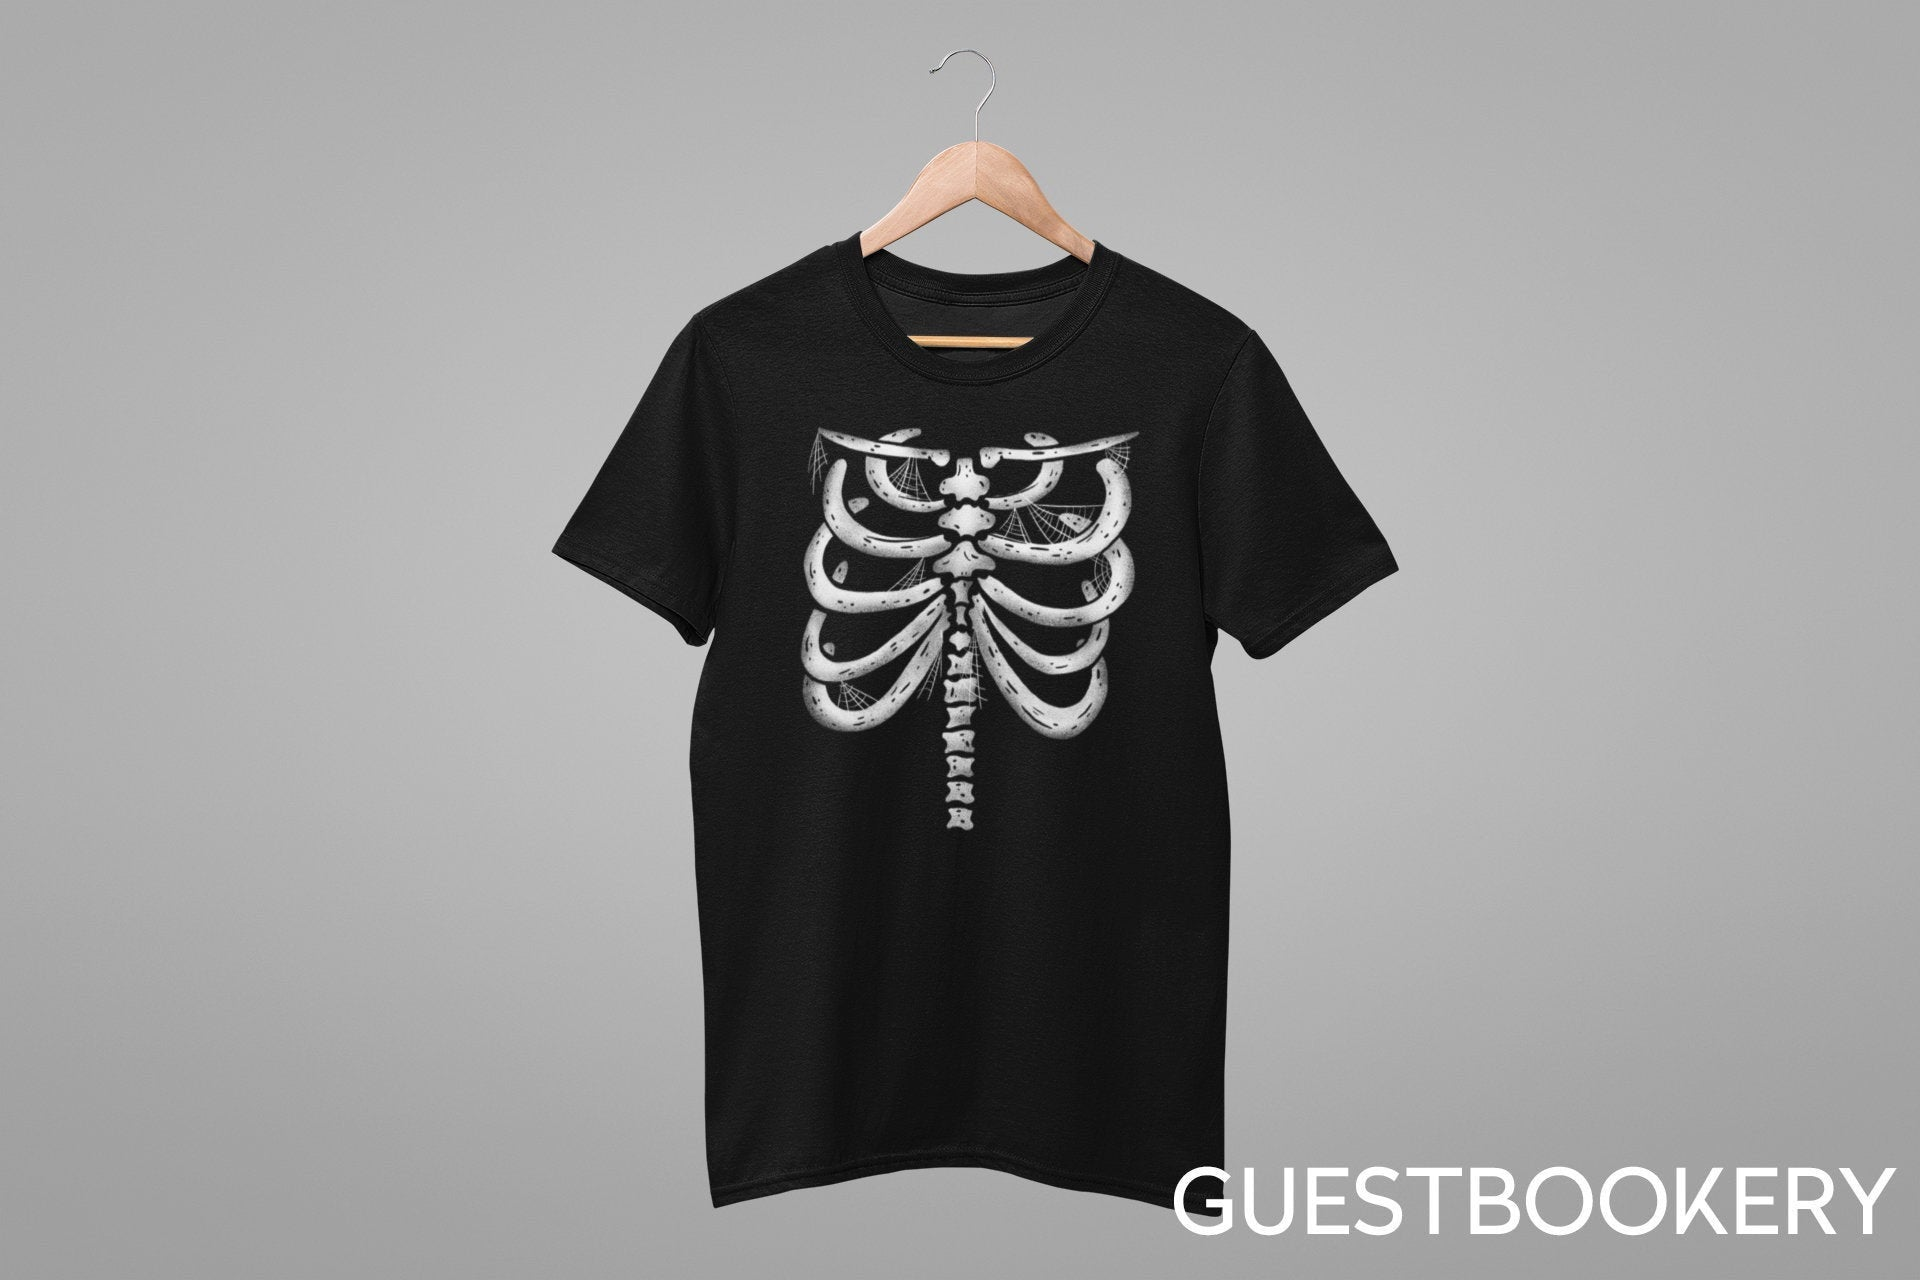 Rib Cage T-shirt - Guestbookery